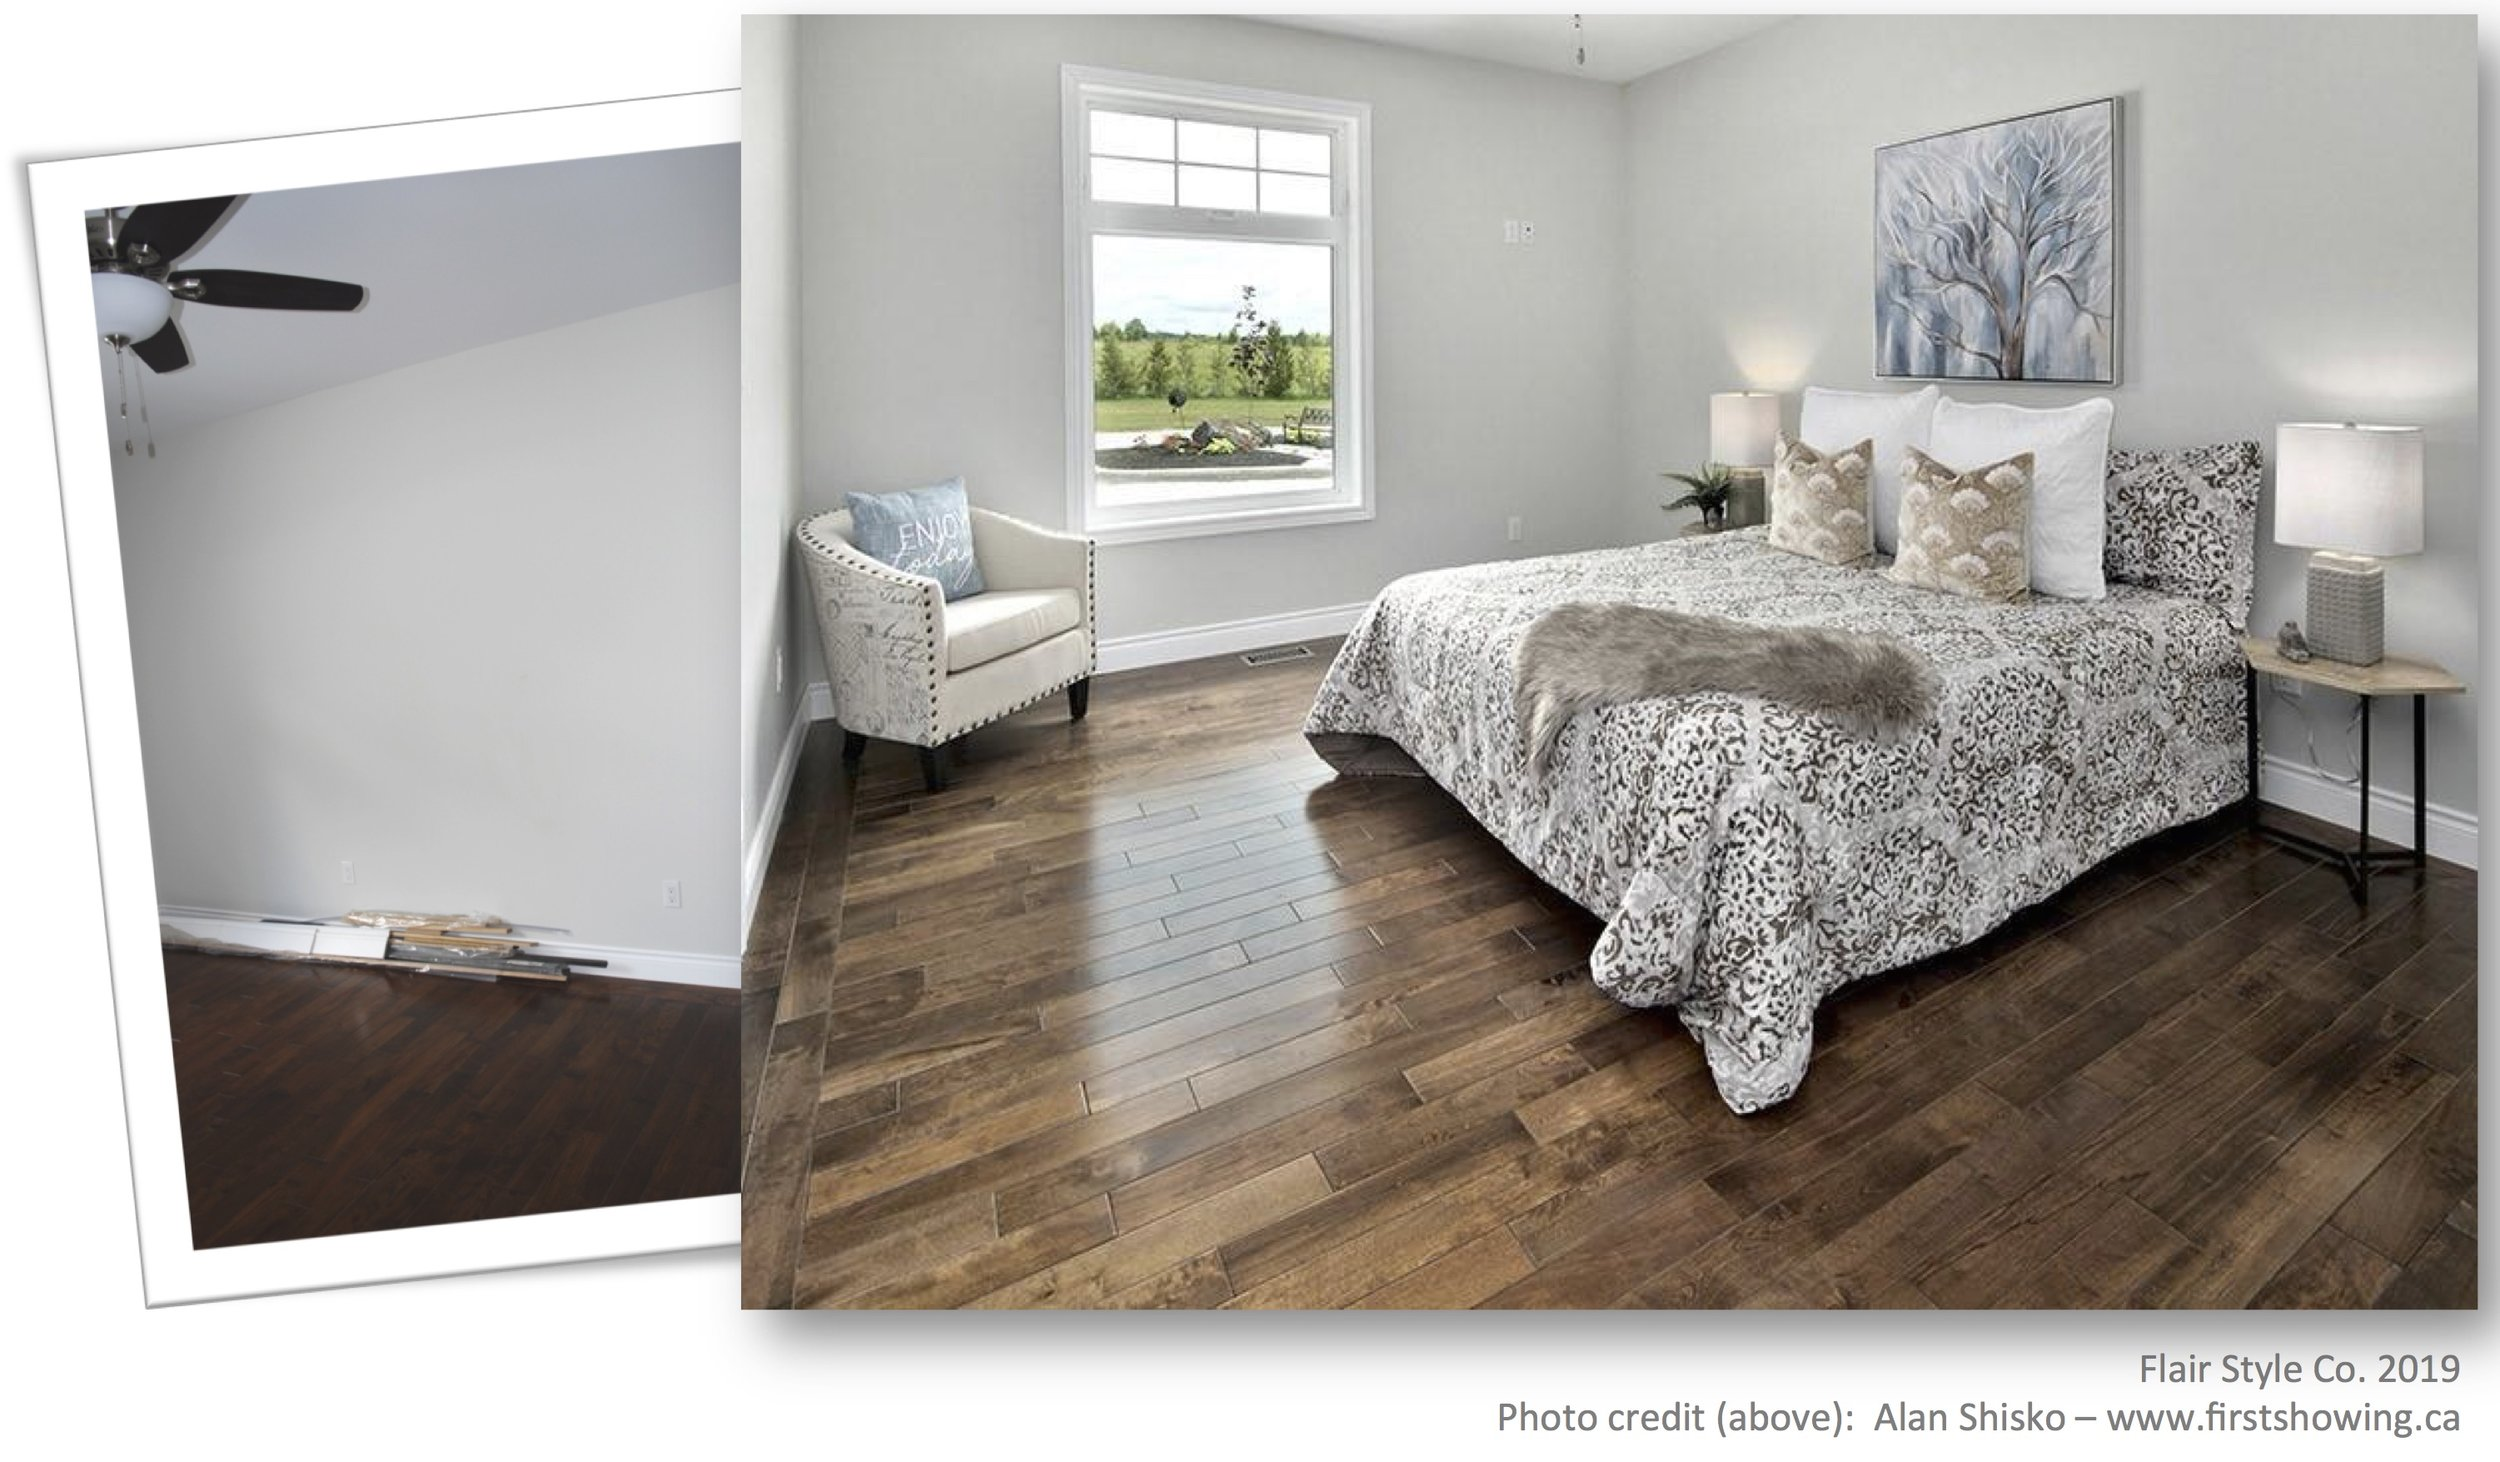 Spare Bedroom - Before/After